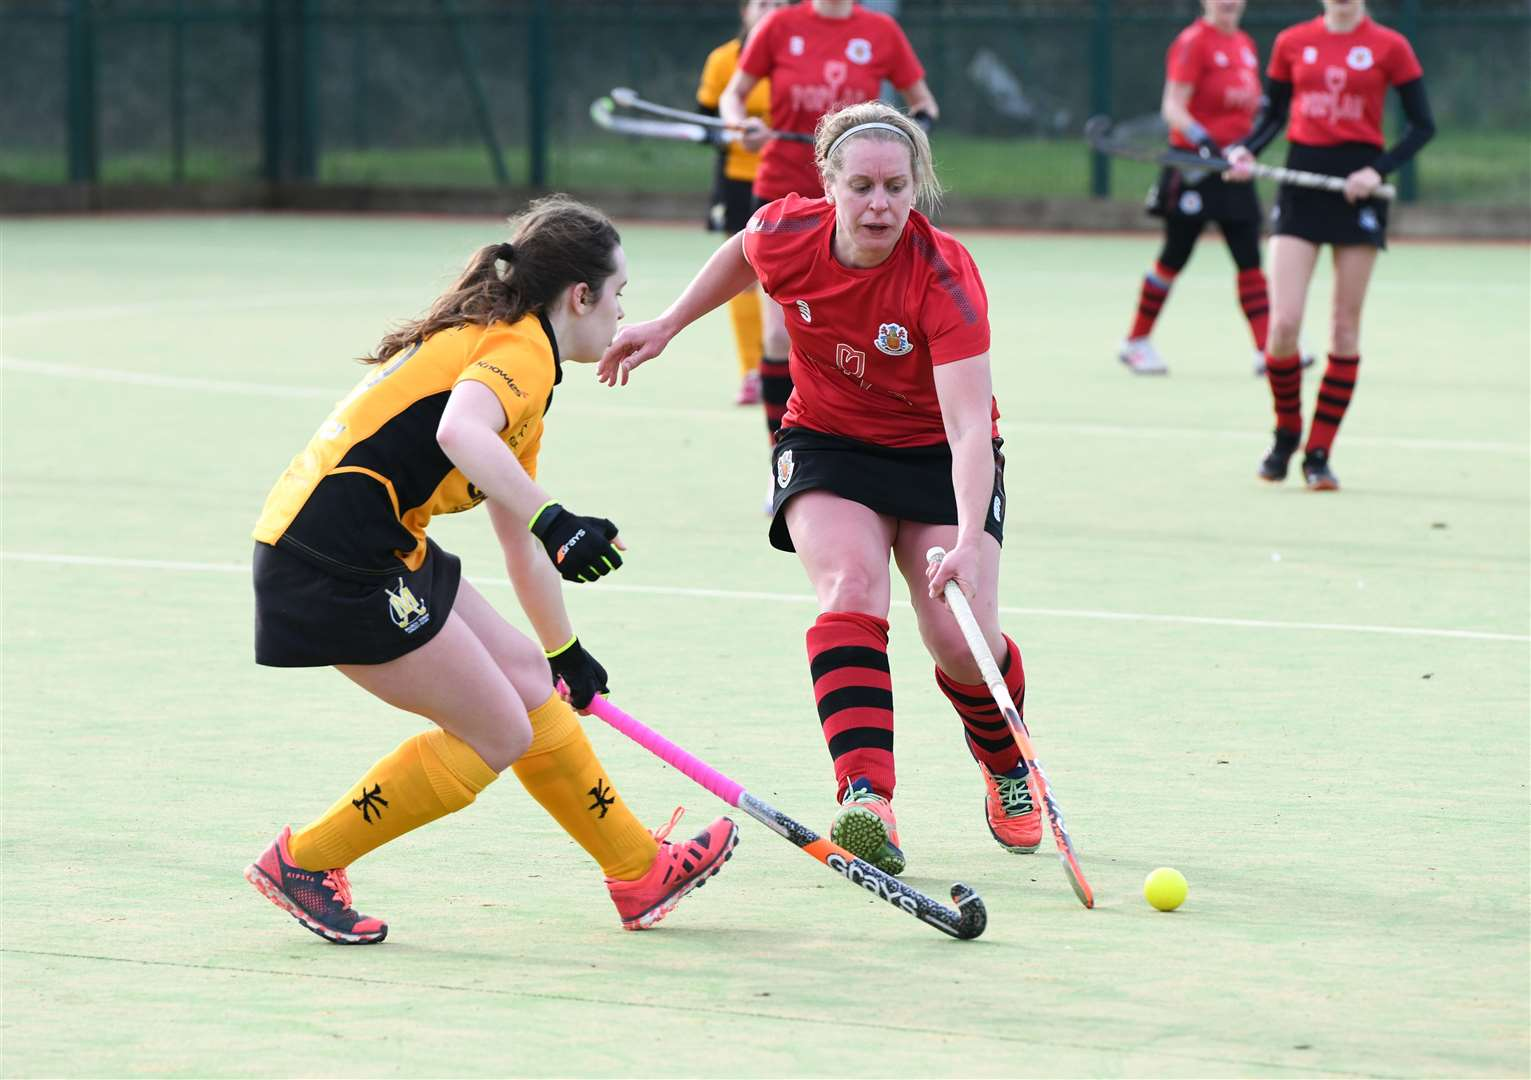 Wisbech Ladies 2nds v March 1st Hockey. (28777769)